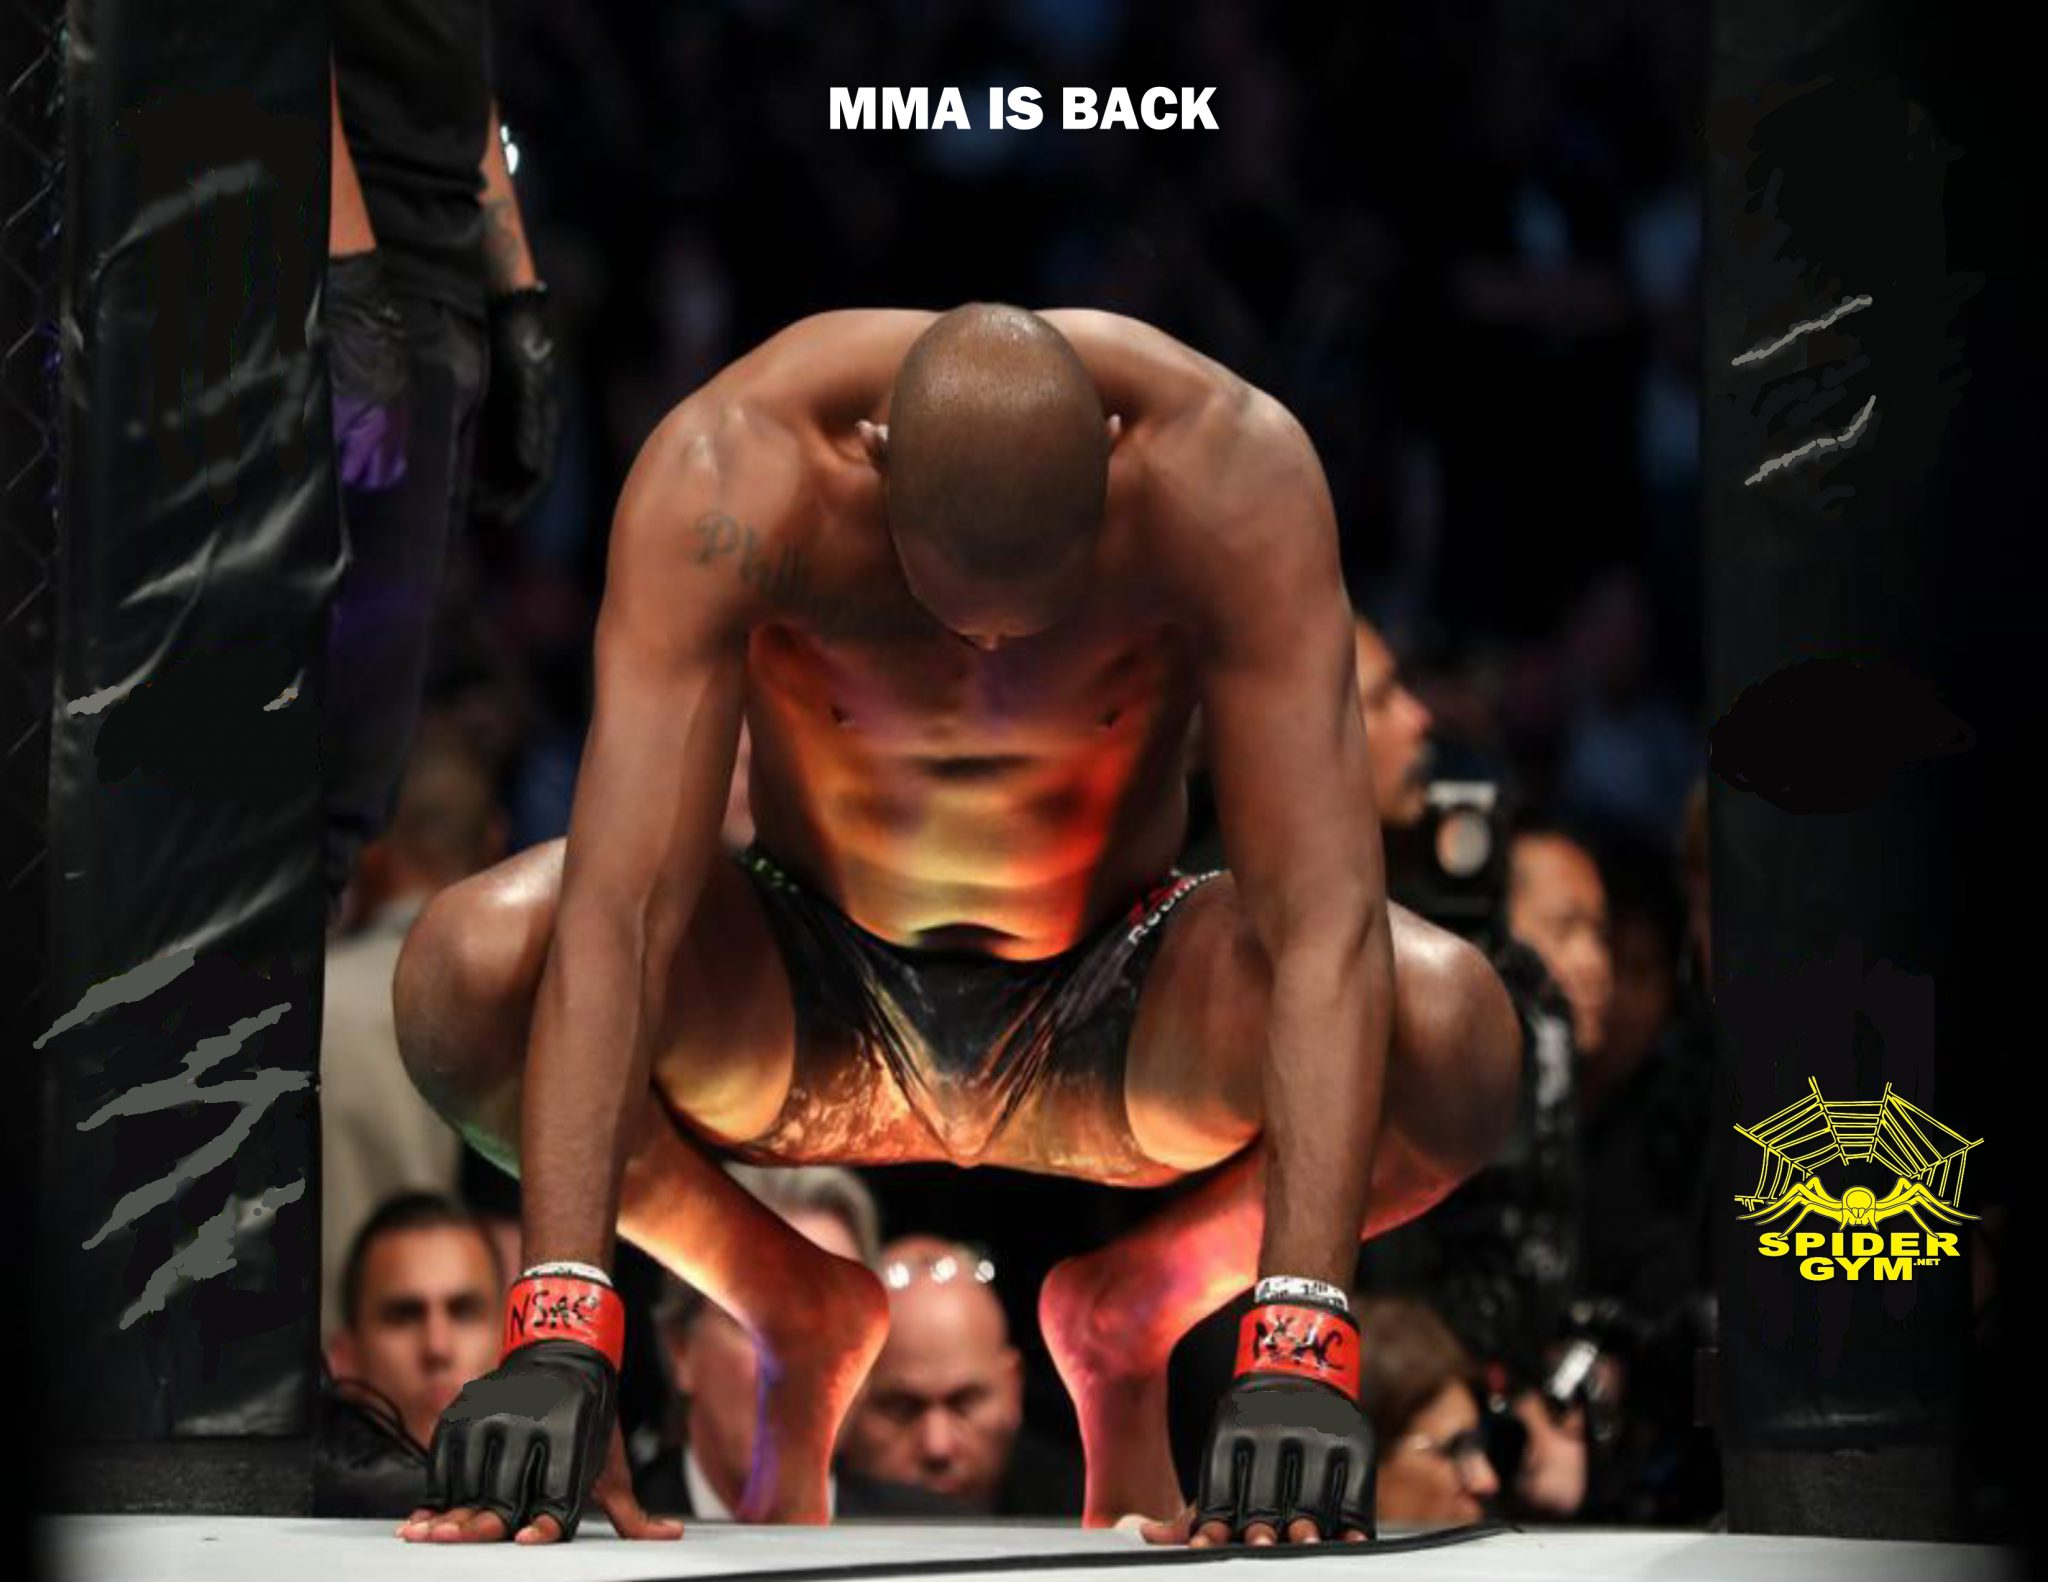 MMA IS BACK